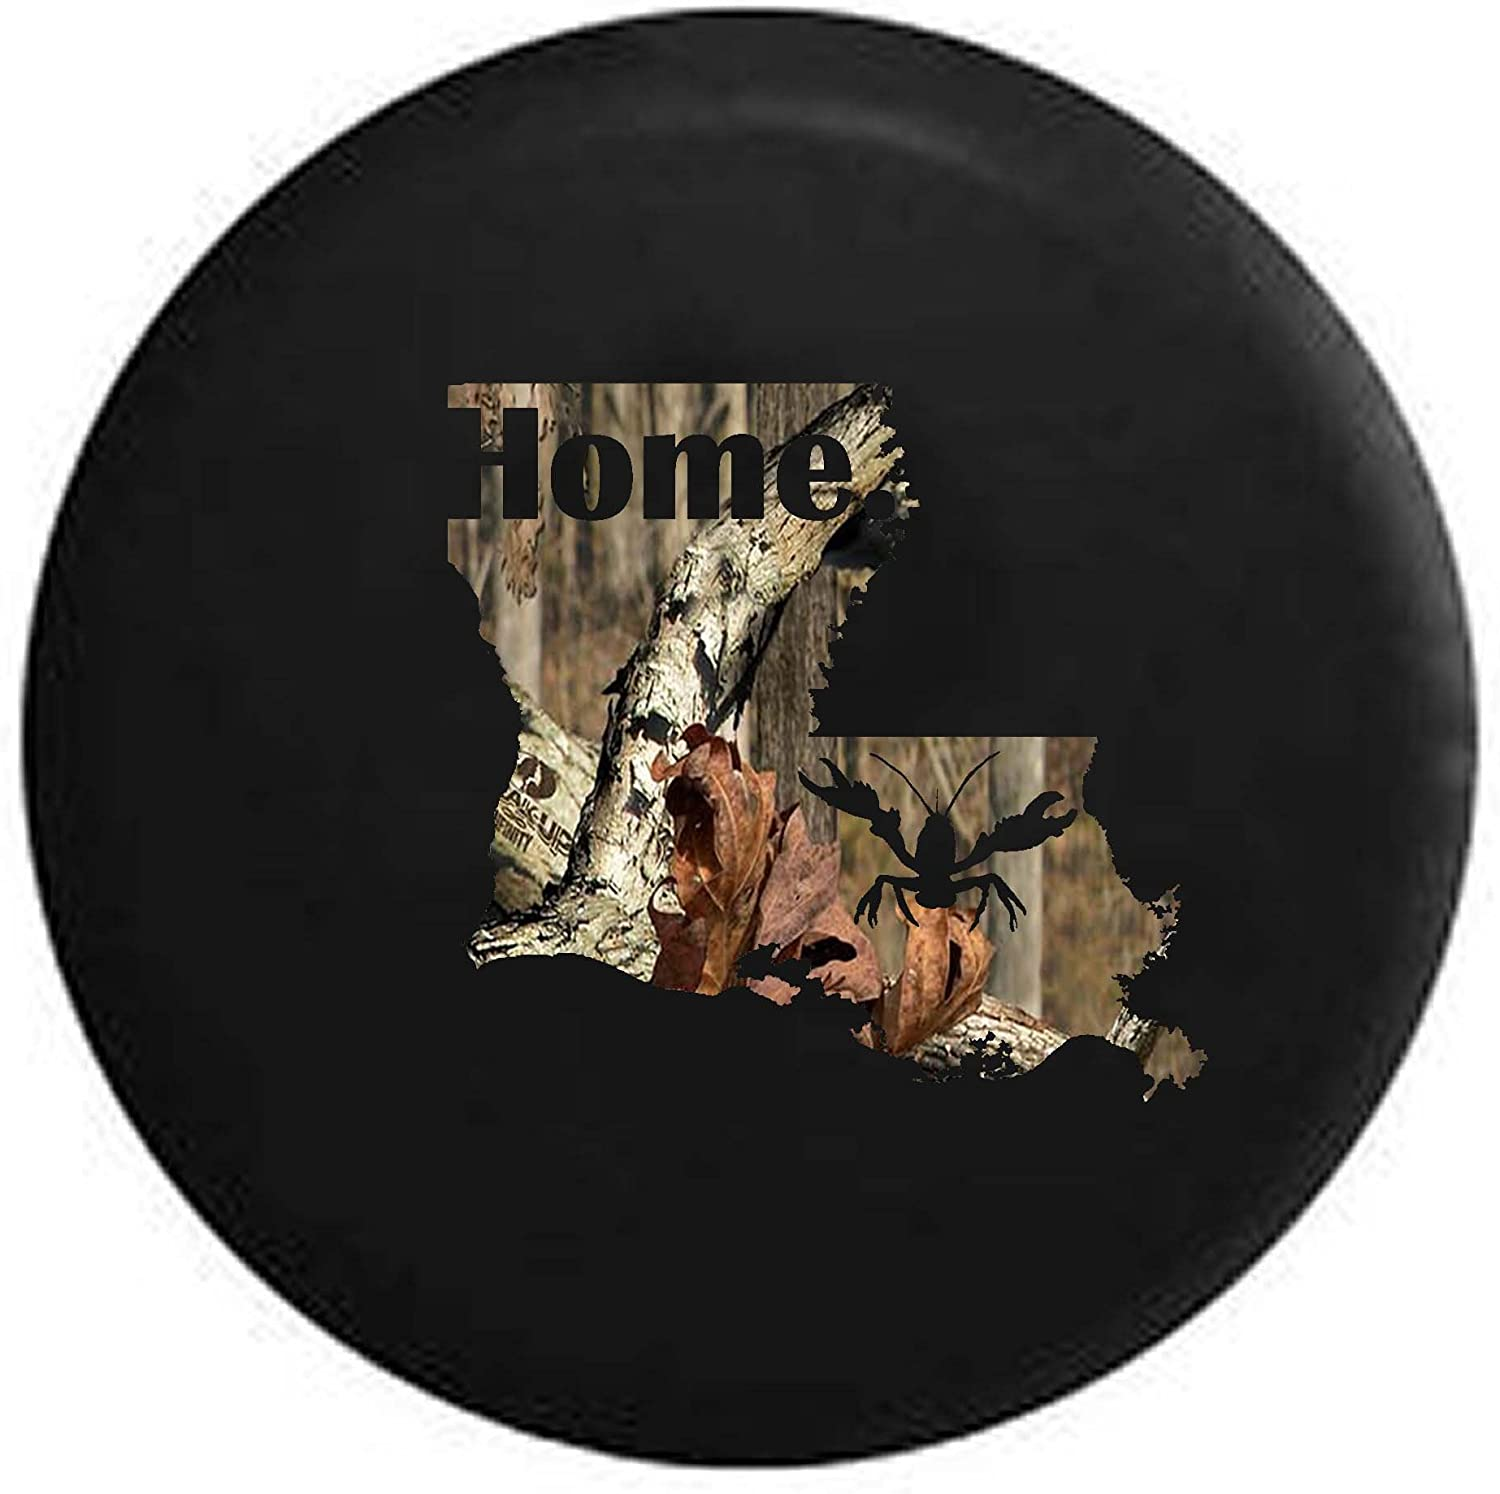 Pike Camo Louisiana Crawfish Home State Edition RV Spare Tire Cover OEM Vinyl Black 27.5 in